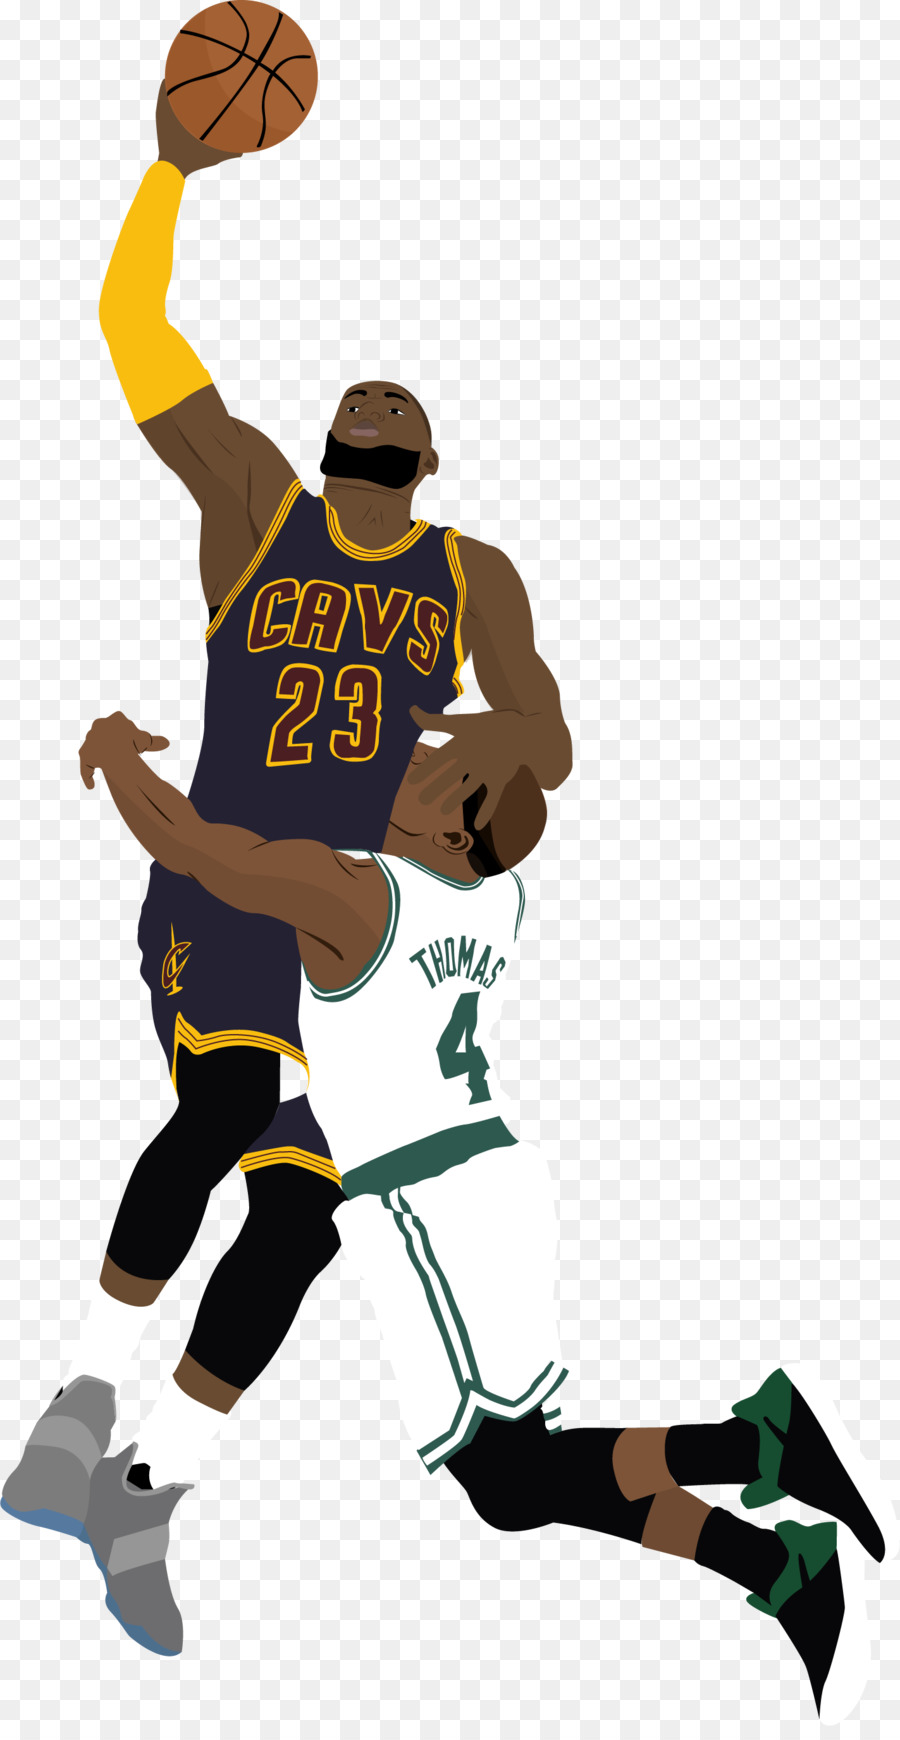 Russell Westbrook Png Download 1423 2729 Free Transparent Iphone Png Download Cleanpng Kisspng